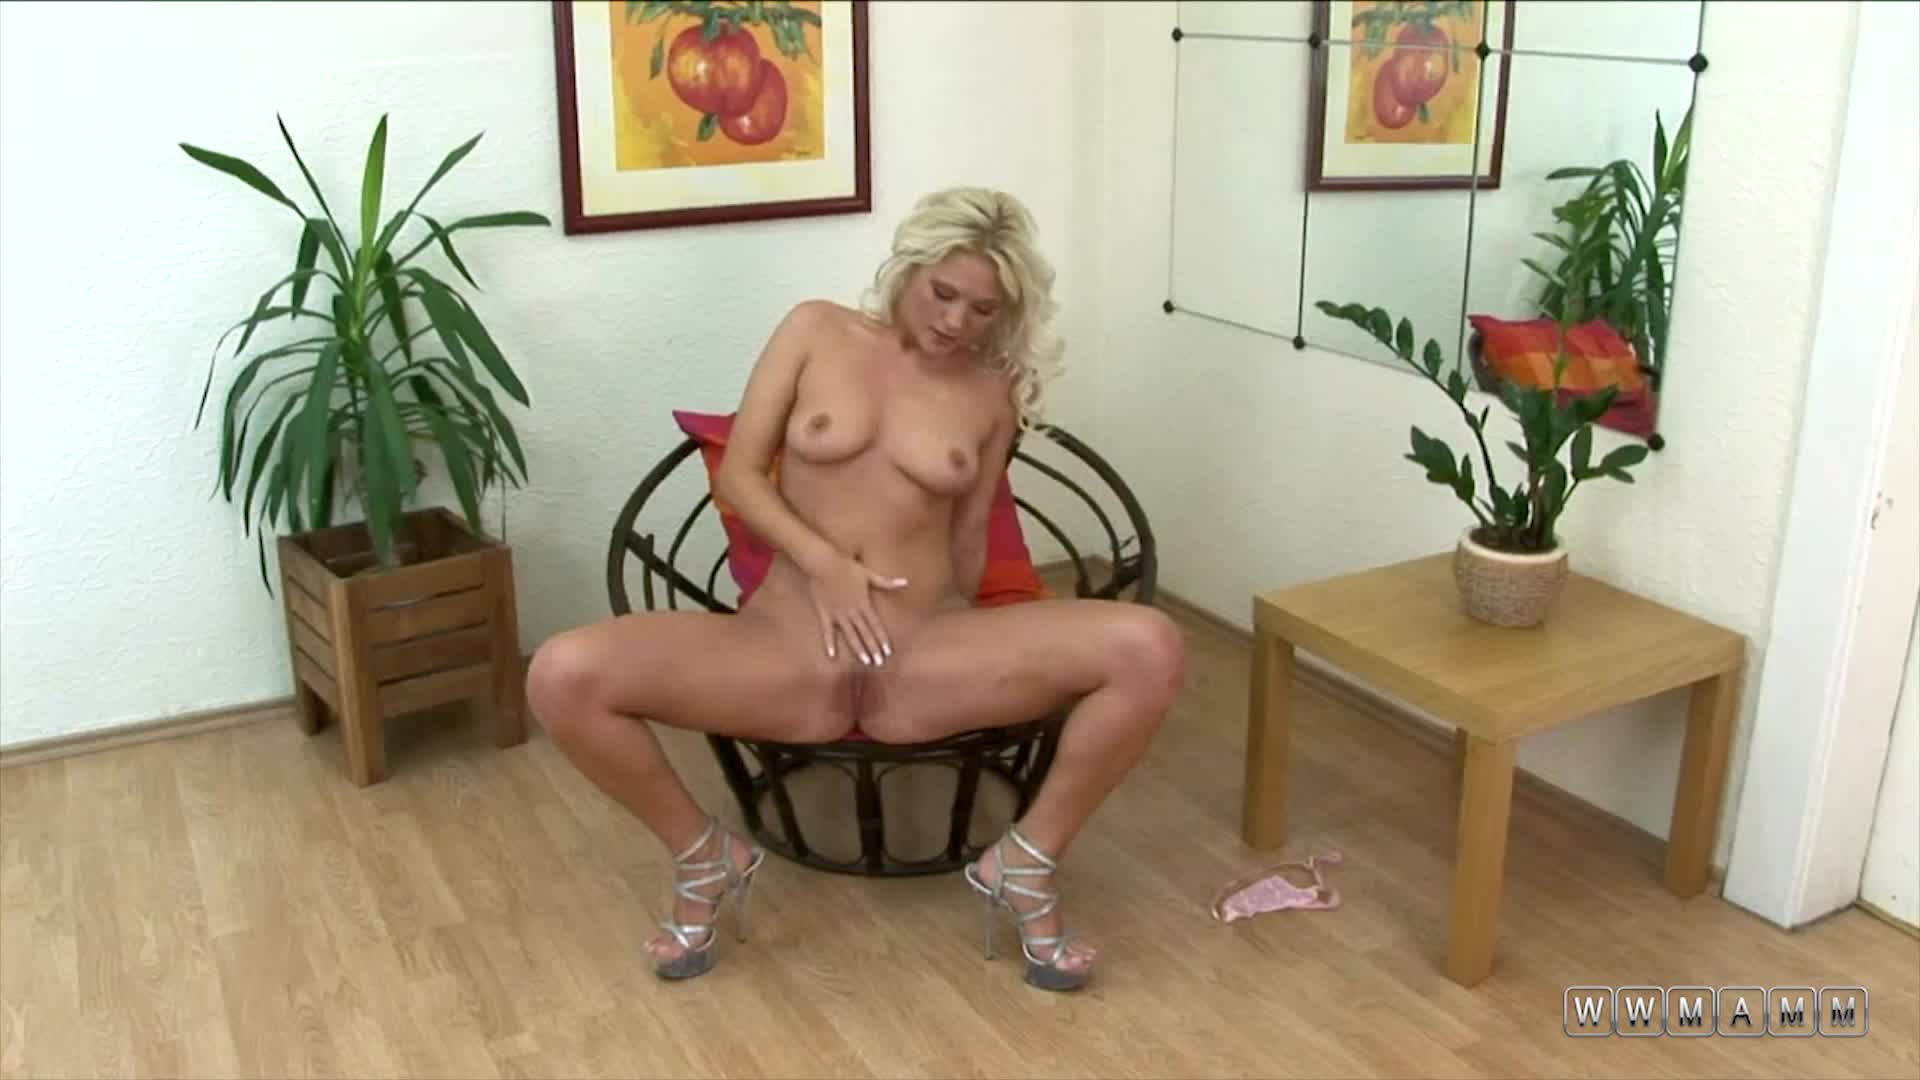 Kathy Anderson Wants To Keep Her High Heels While Masturbating